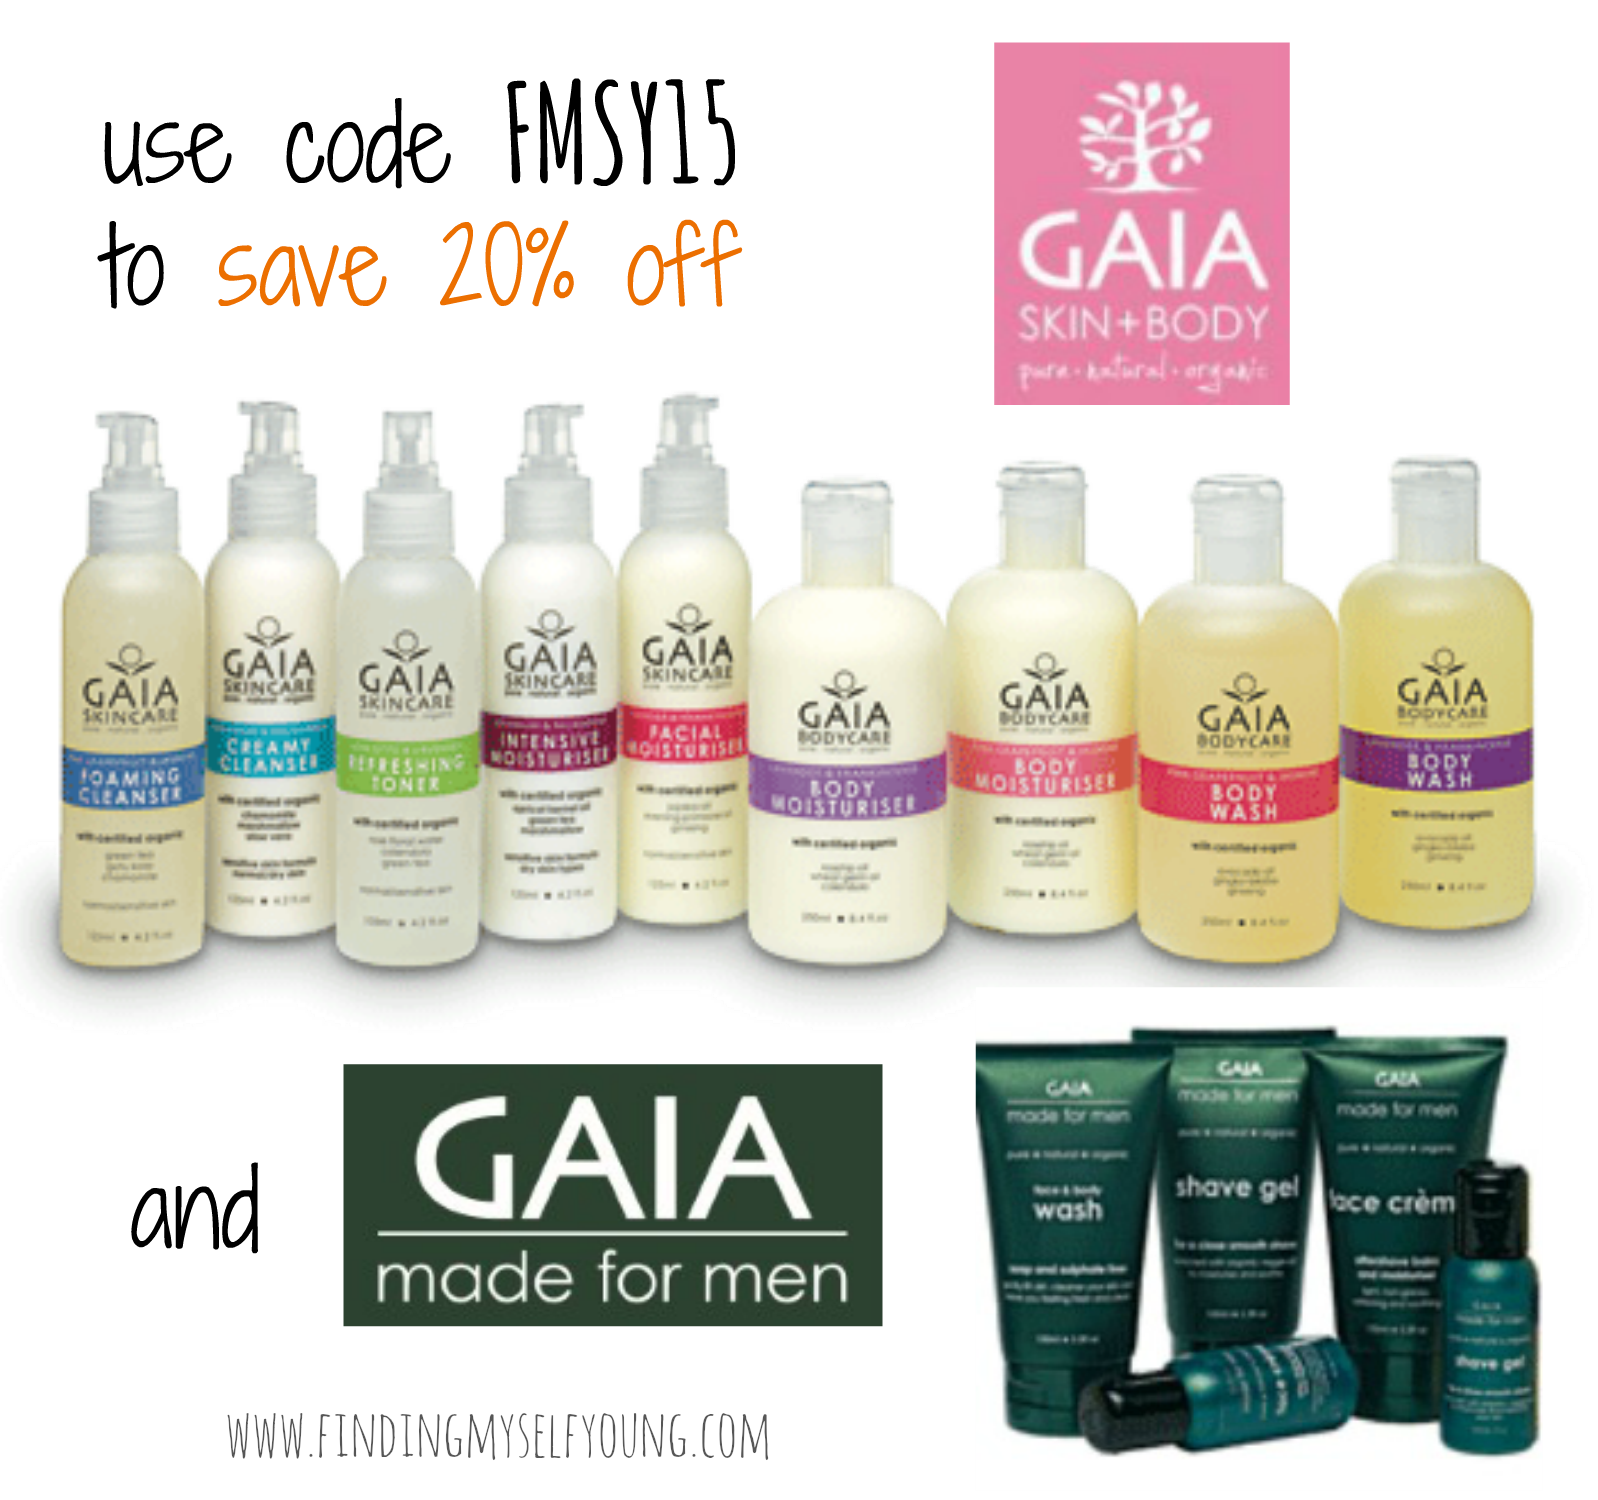 20 percent off Gaia skin + body and Gaia made for men